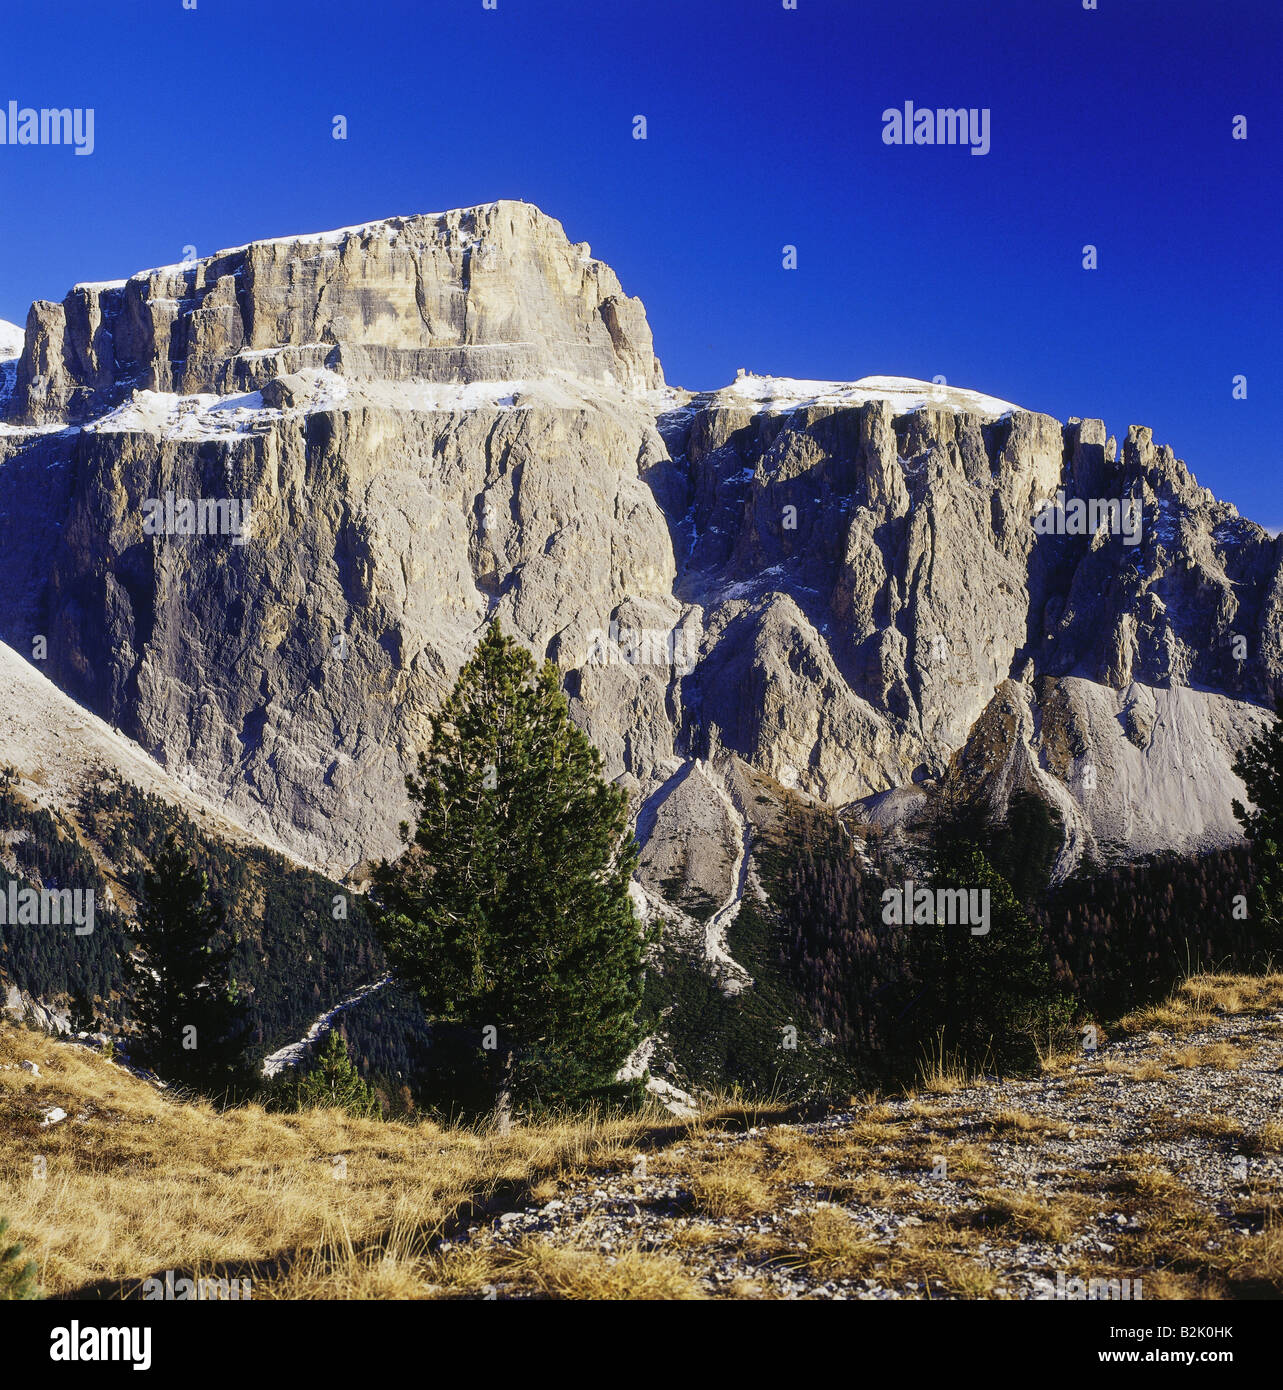 geography / travel, Italy, South Tyrol, landscapes, Dolomites, Sass Pordoi, Sella Massif, view from Sella pass, - Stock Image